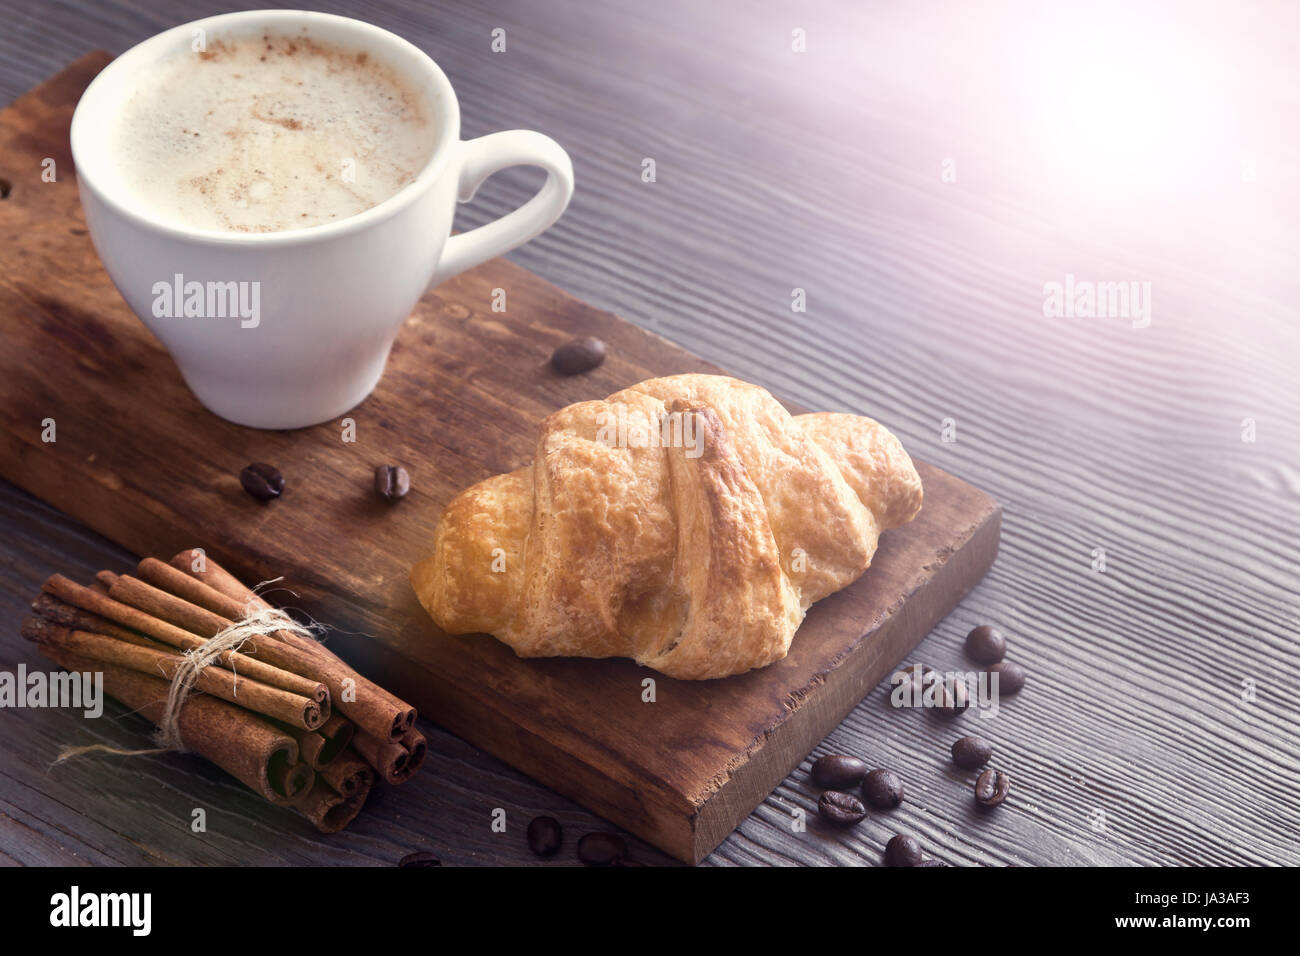 Coffee with croissant for breakfast. French croissant and Cappuccino coffee, tint image. - Stock Image